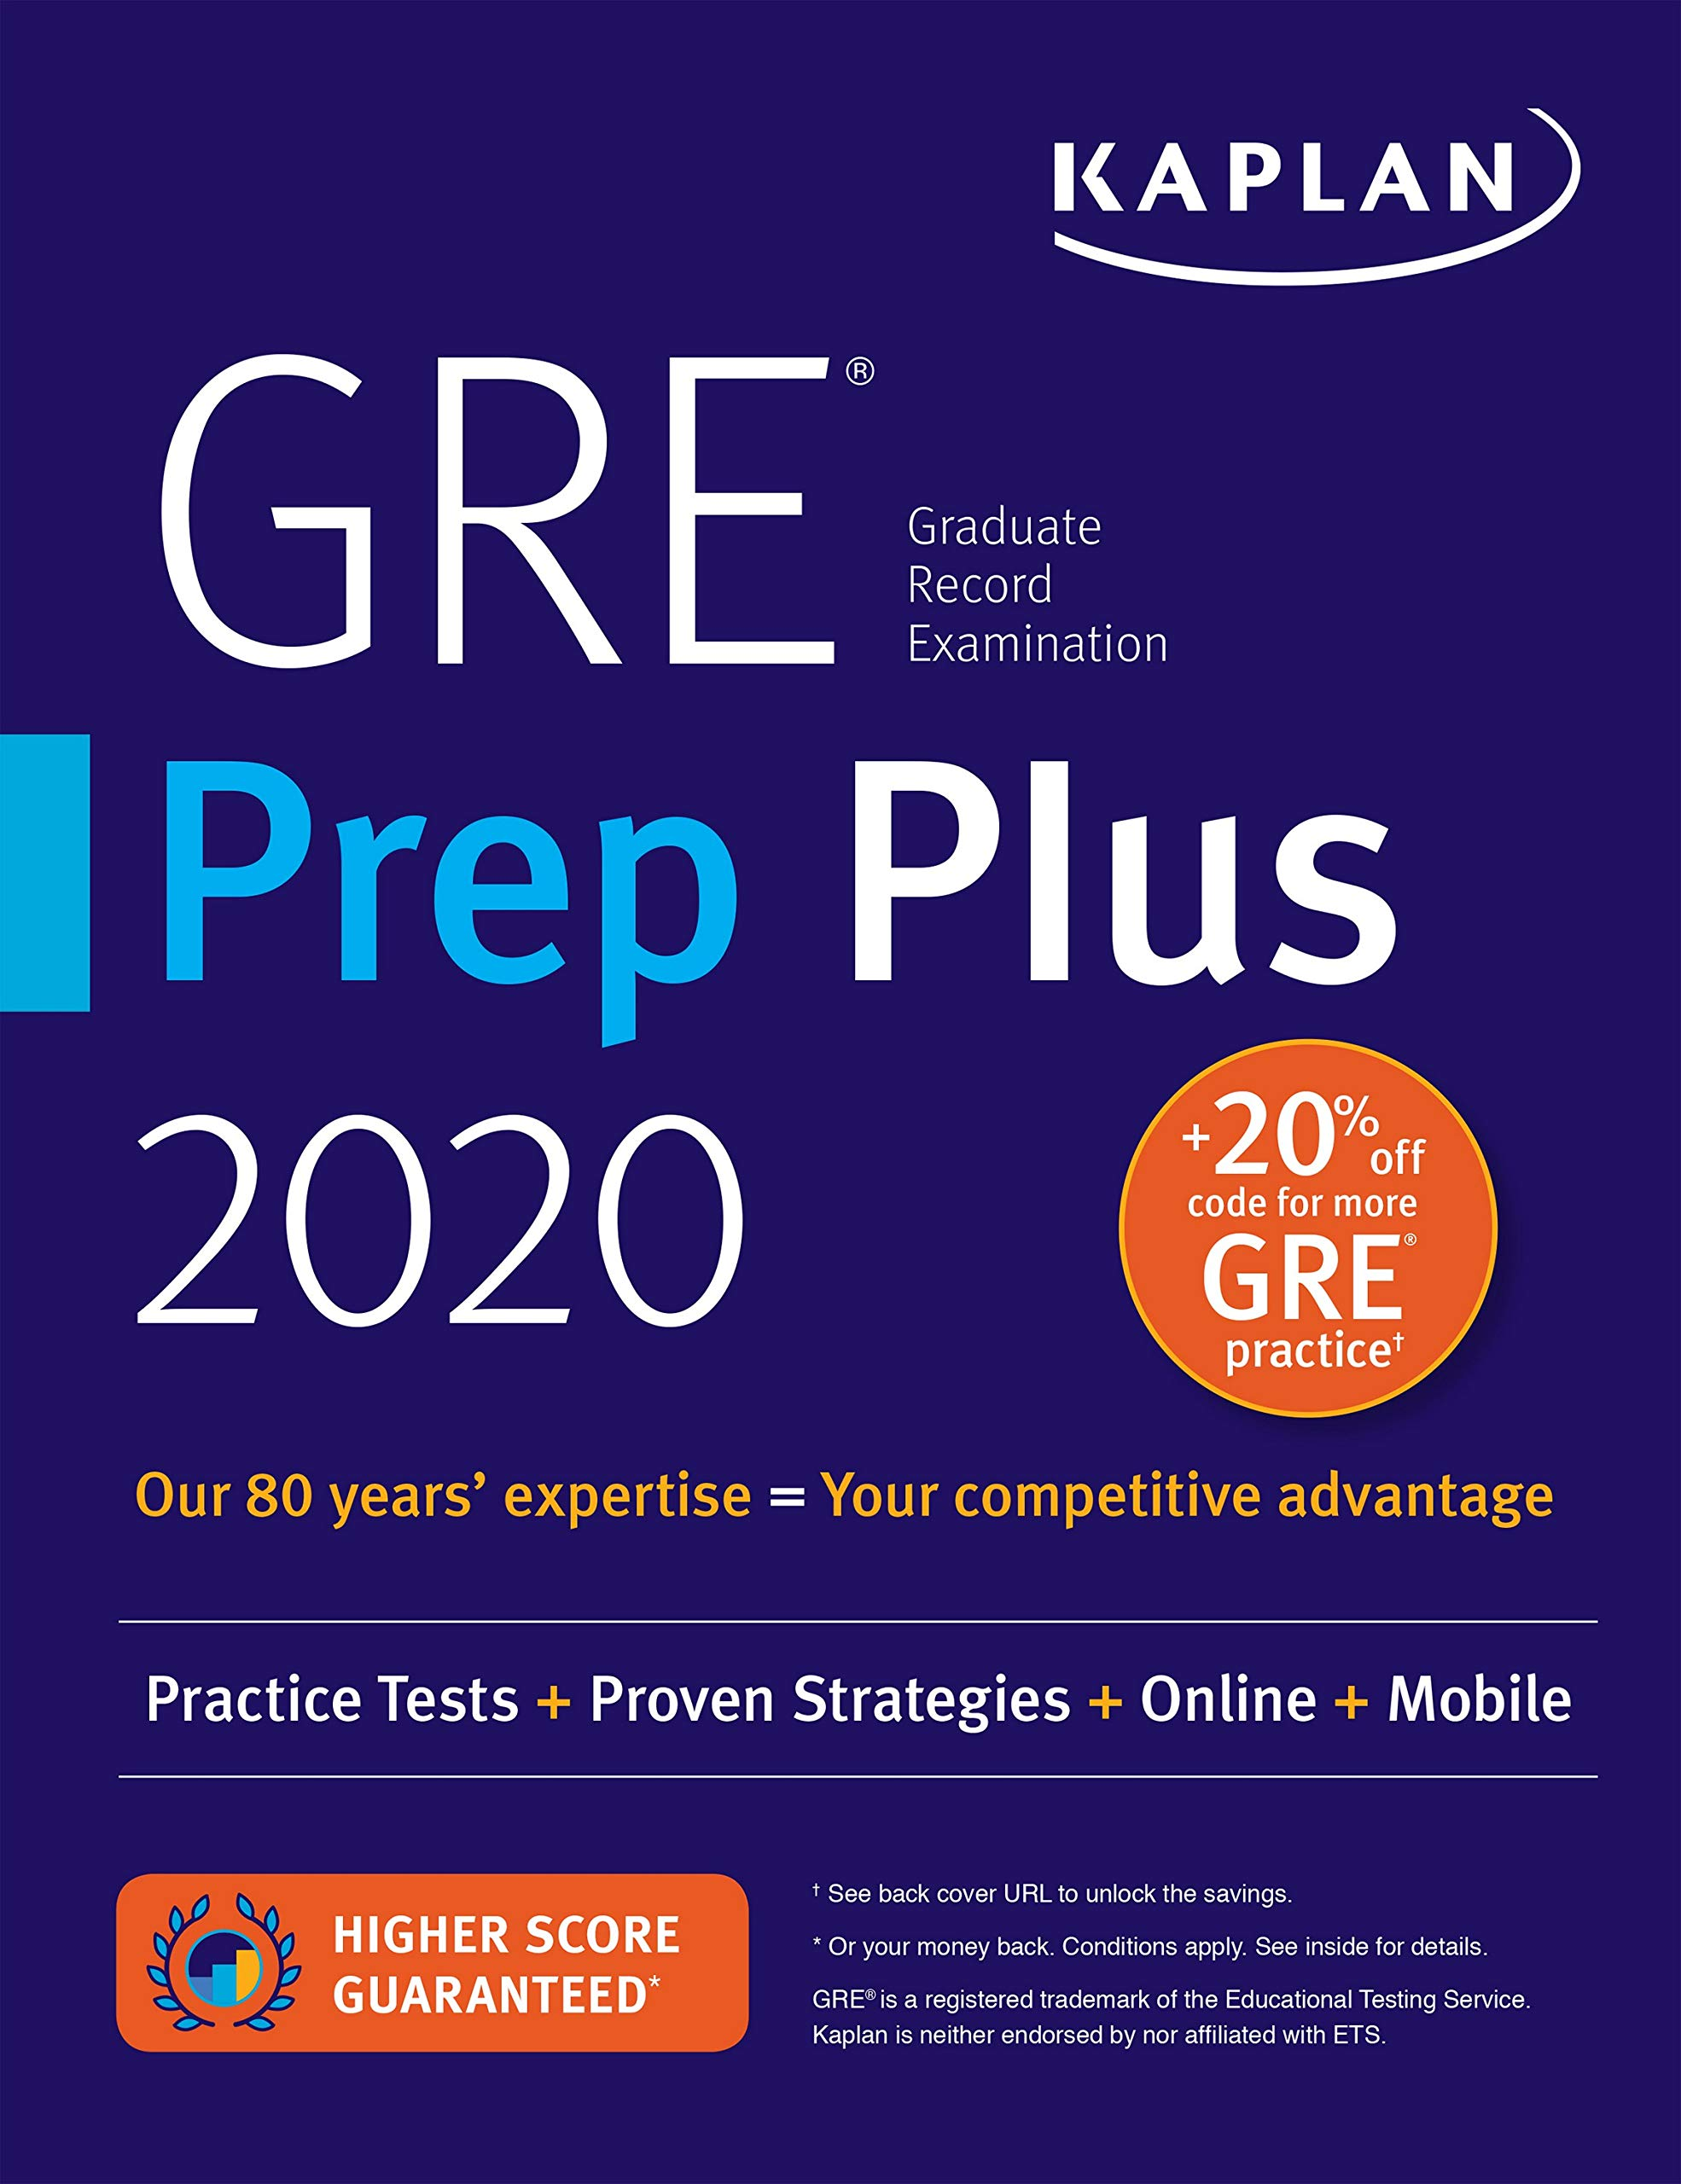 Best Gre Prep Book 2020.Gre Prep Plus 2020 6 Practice Tests Proven Strategies